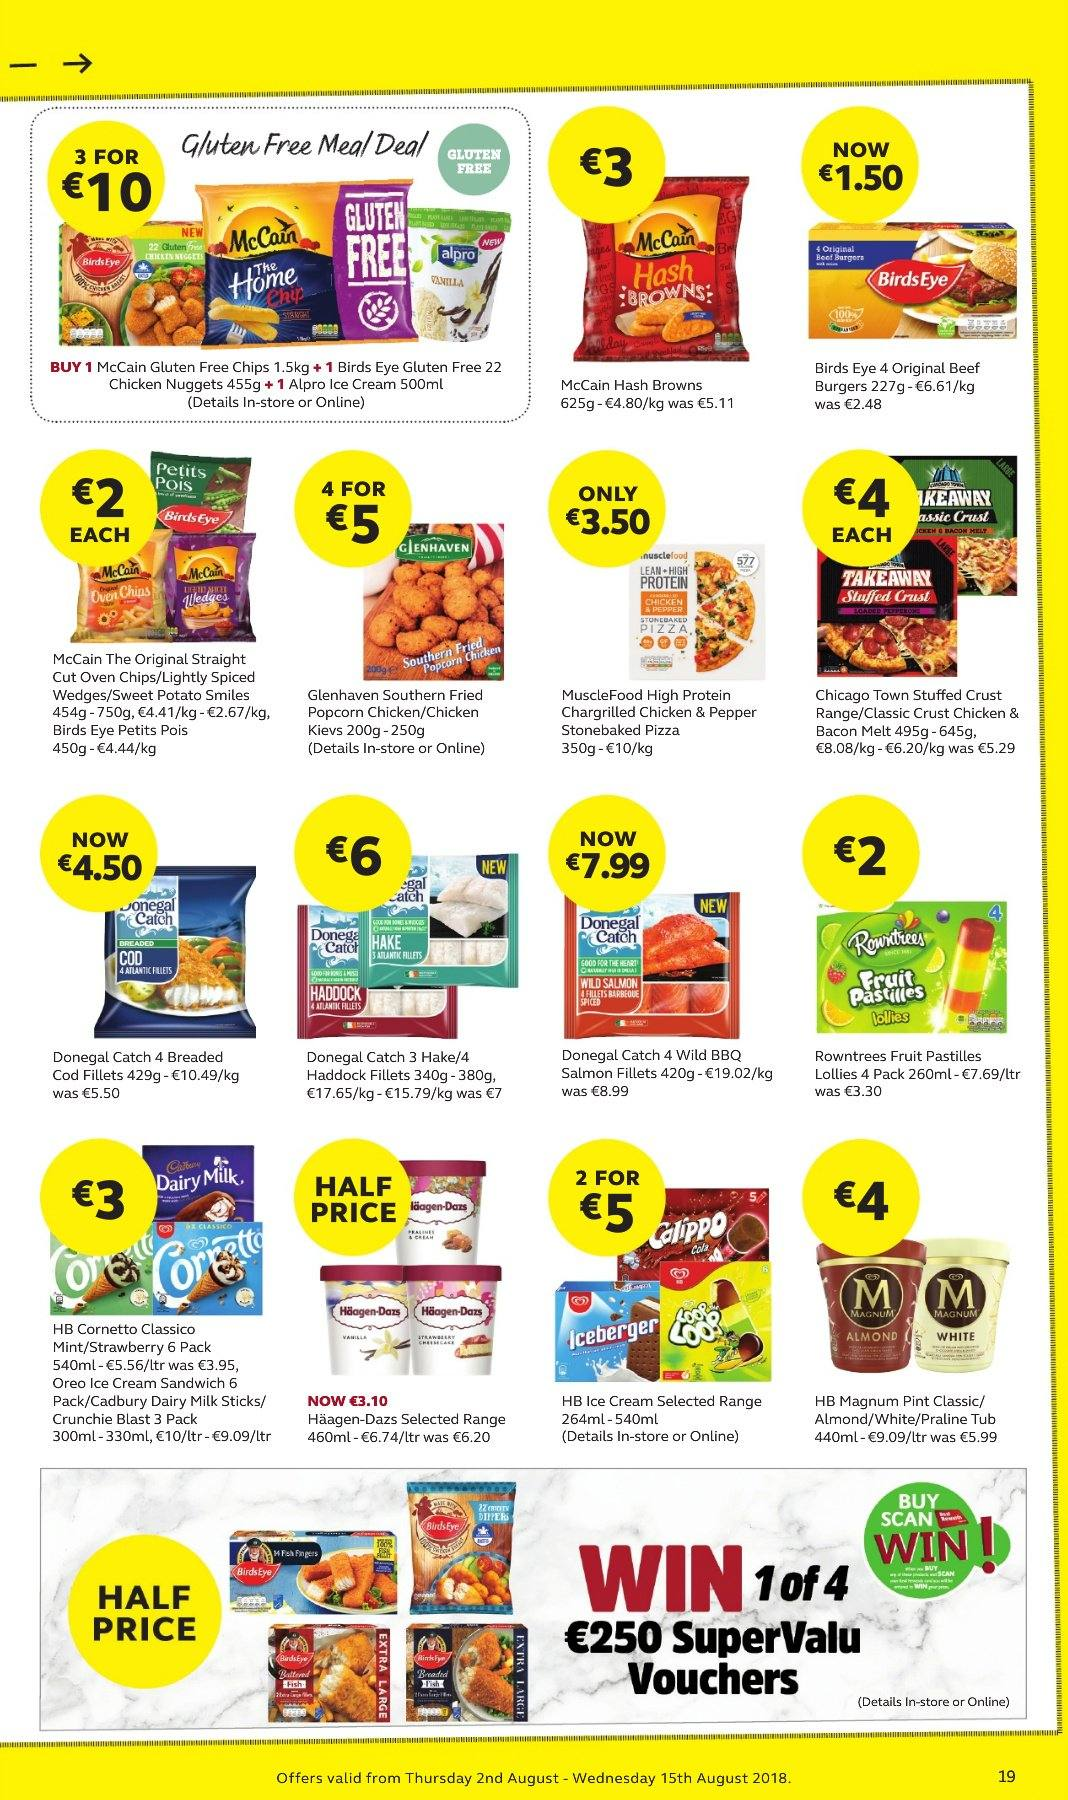 SuperValu offer  - 2.8.2018 - 15.8.2018 - Sales products - sweet potatoe, cod, salmon, salmon fillet, haddock, hake, hash browns, pizza, sandwich, nuggets, hamburger, chicken nuggets, Bird's Eye, Alpro, beef burger, bacon, Oreo, Magnum, ice cream, ice cream sandwich, Cornetto, Häagen-Dazs, Donegal Catch, McCain, oven chips, Cadbury, pastilles, Dairy Milk, popcorn, almonds. Page 19.